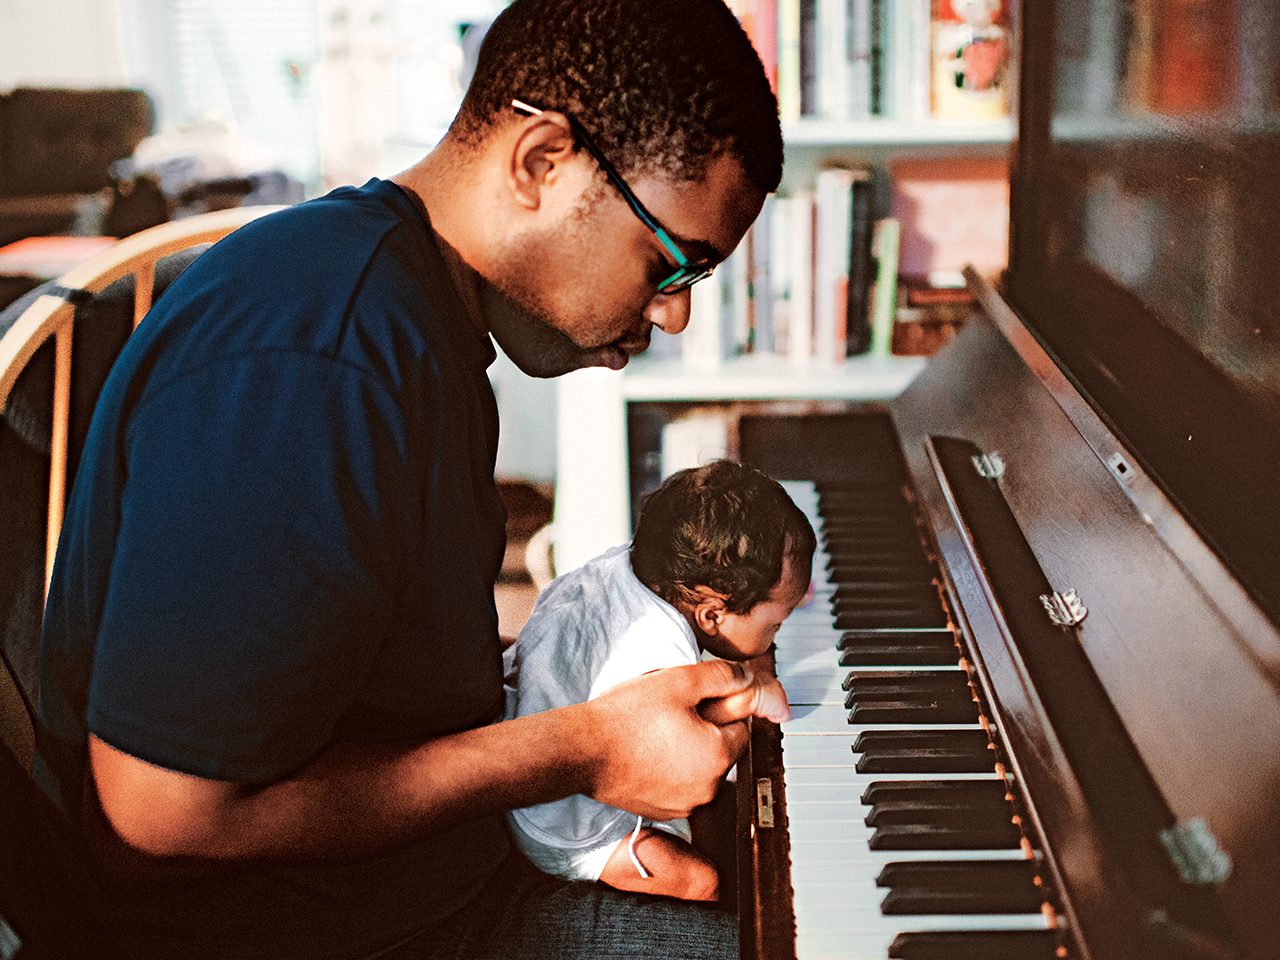 Dad sits at the piano with baby son in his lap